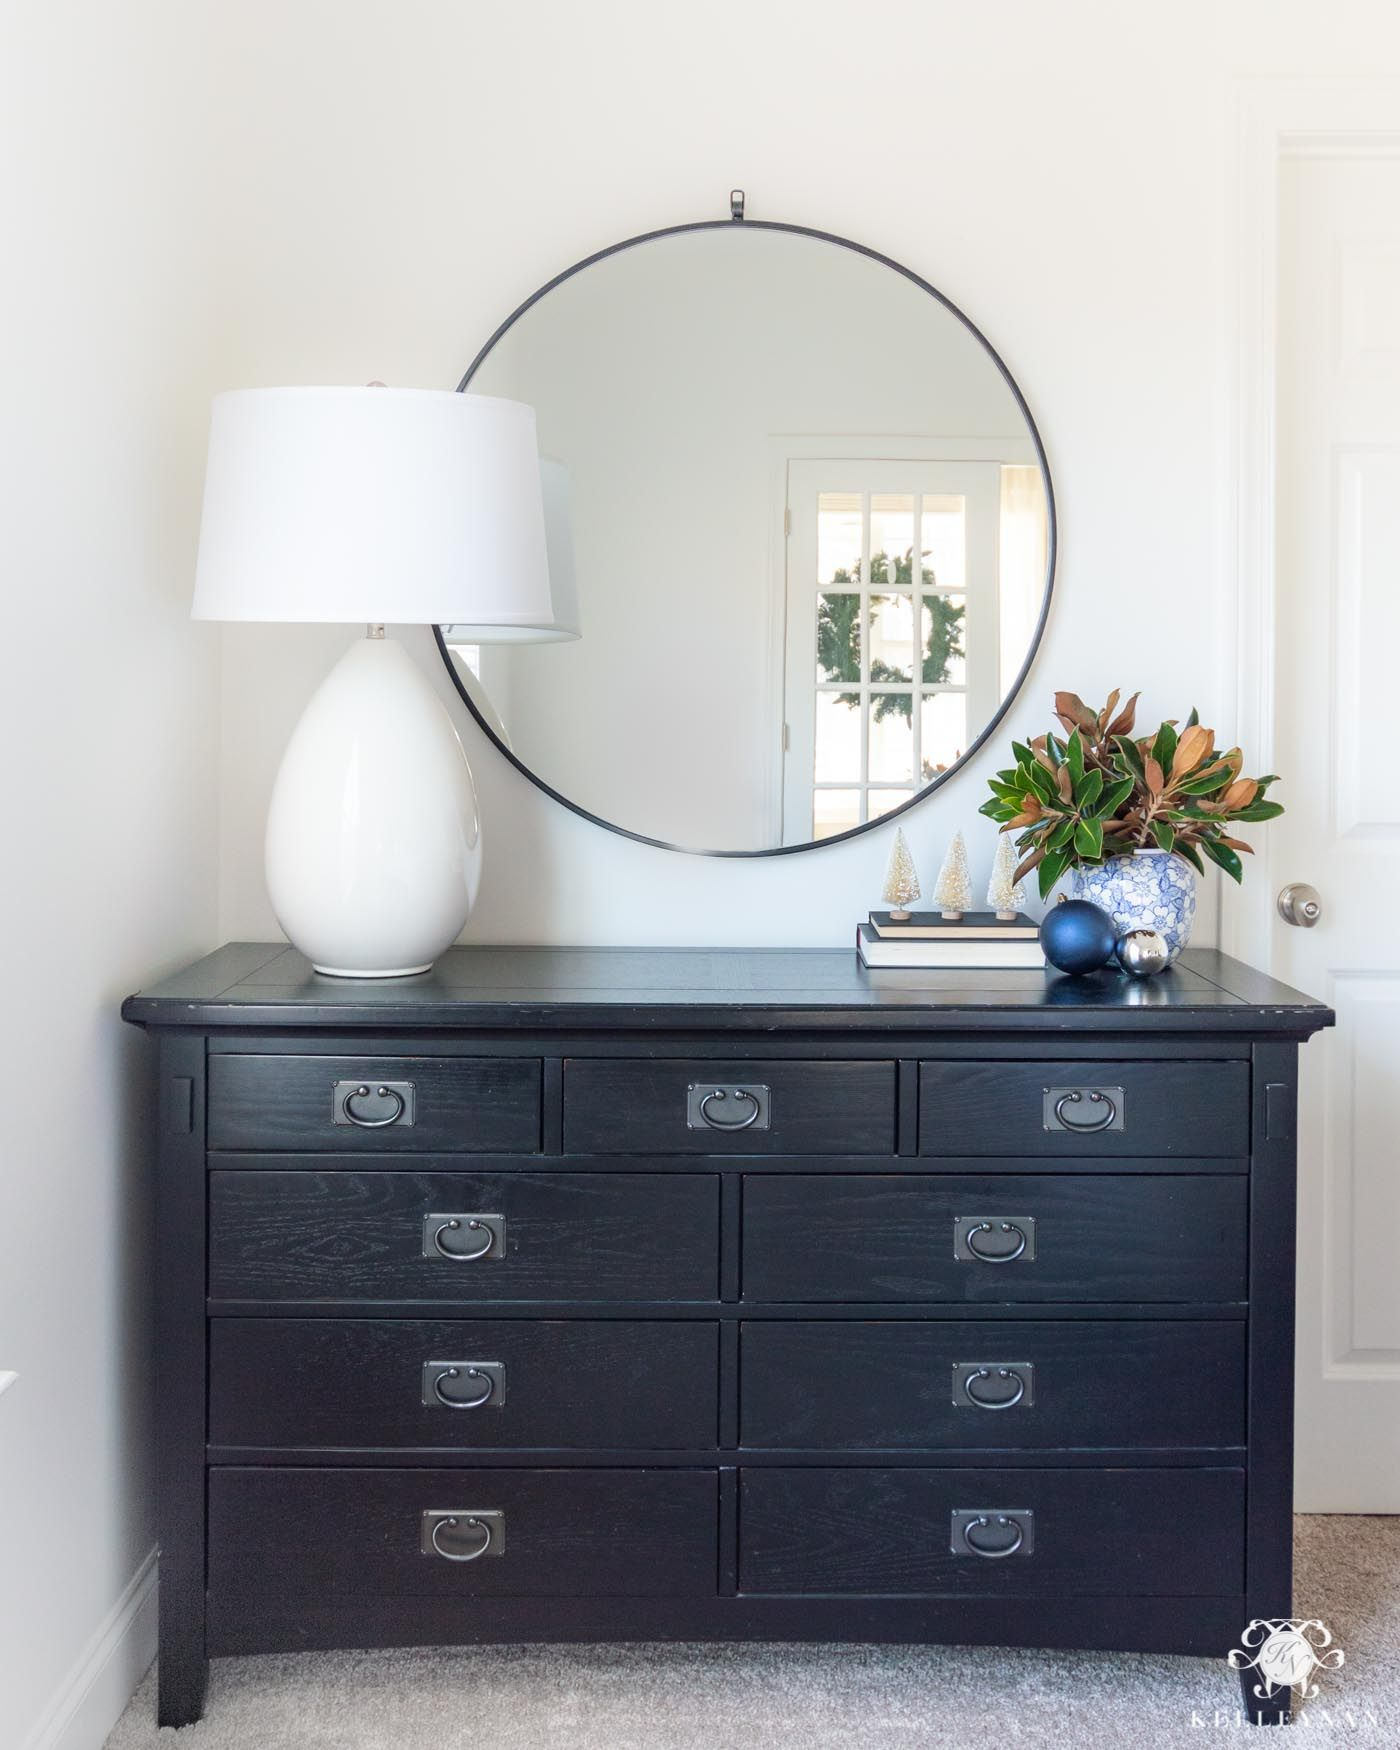 How To Style And Decorate A Bedroom Dresser With A Round Mirror White Lamp Winter Floral Arrangement And Chris Dresser Decor How To Decorate A Dresser Decor [ 1750 x 1400 Pixel ]